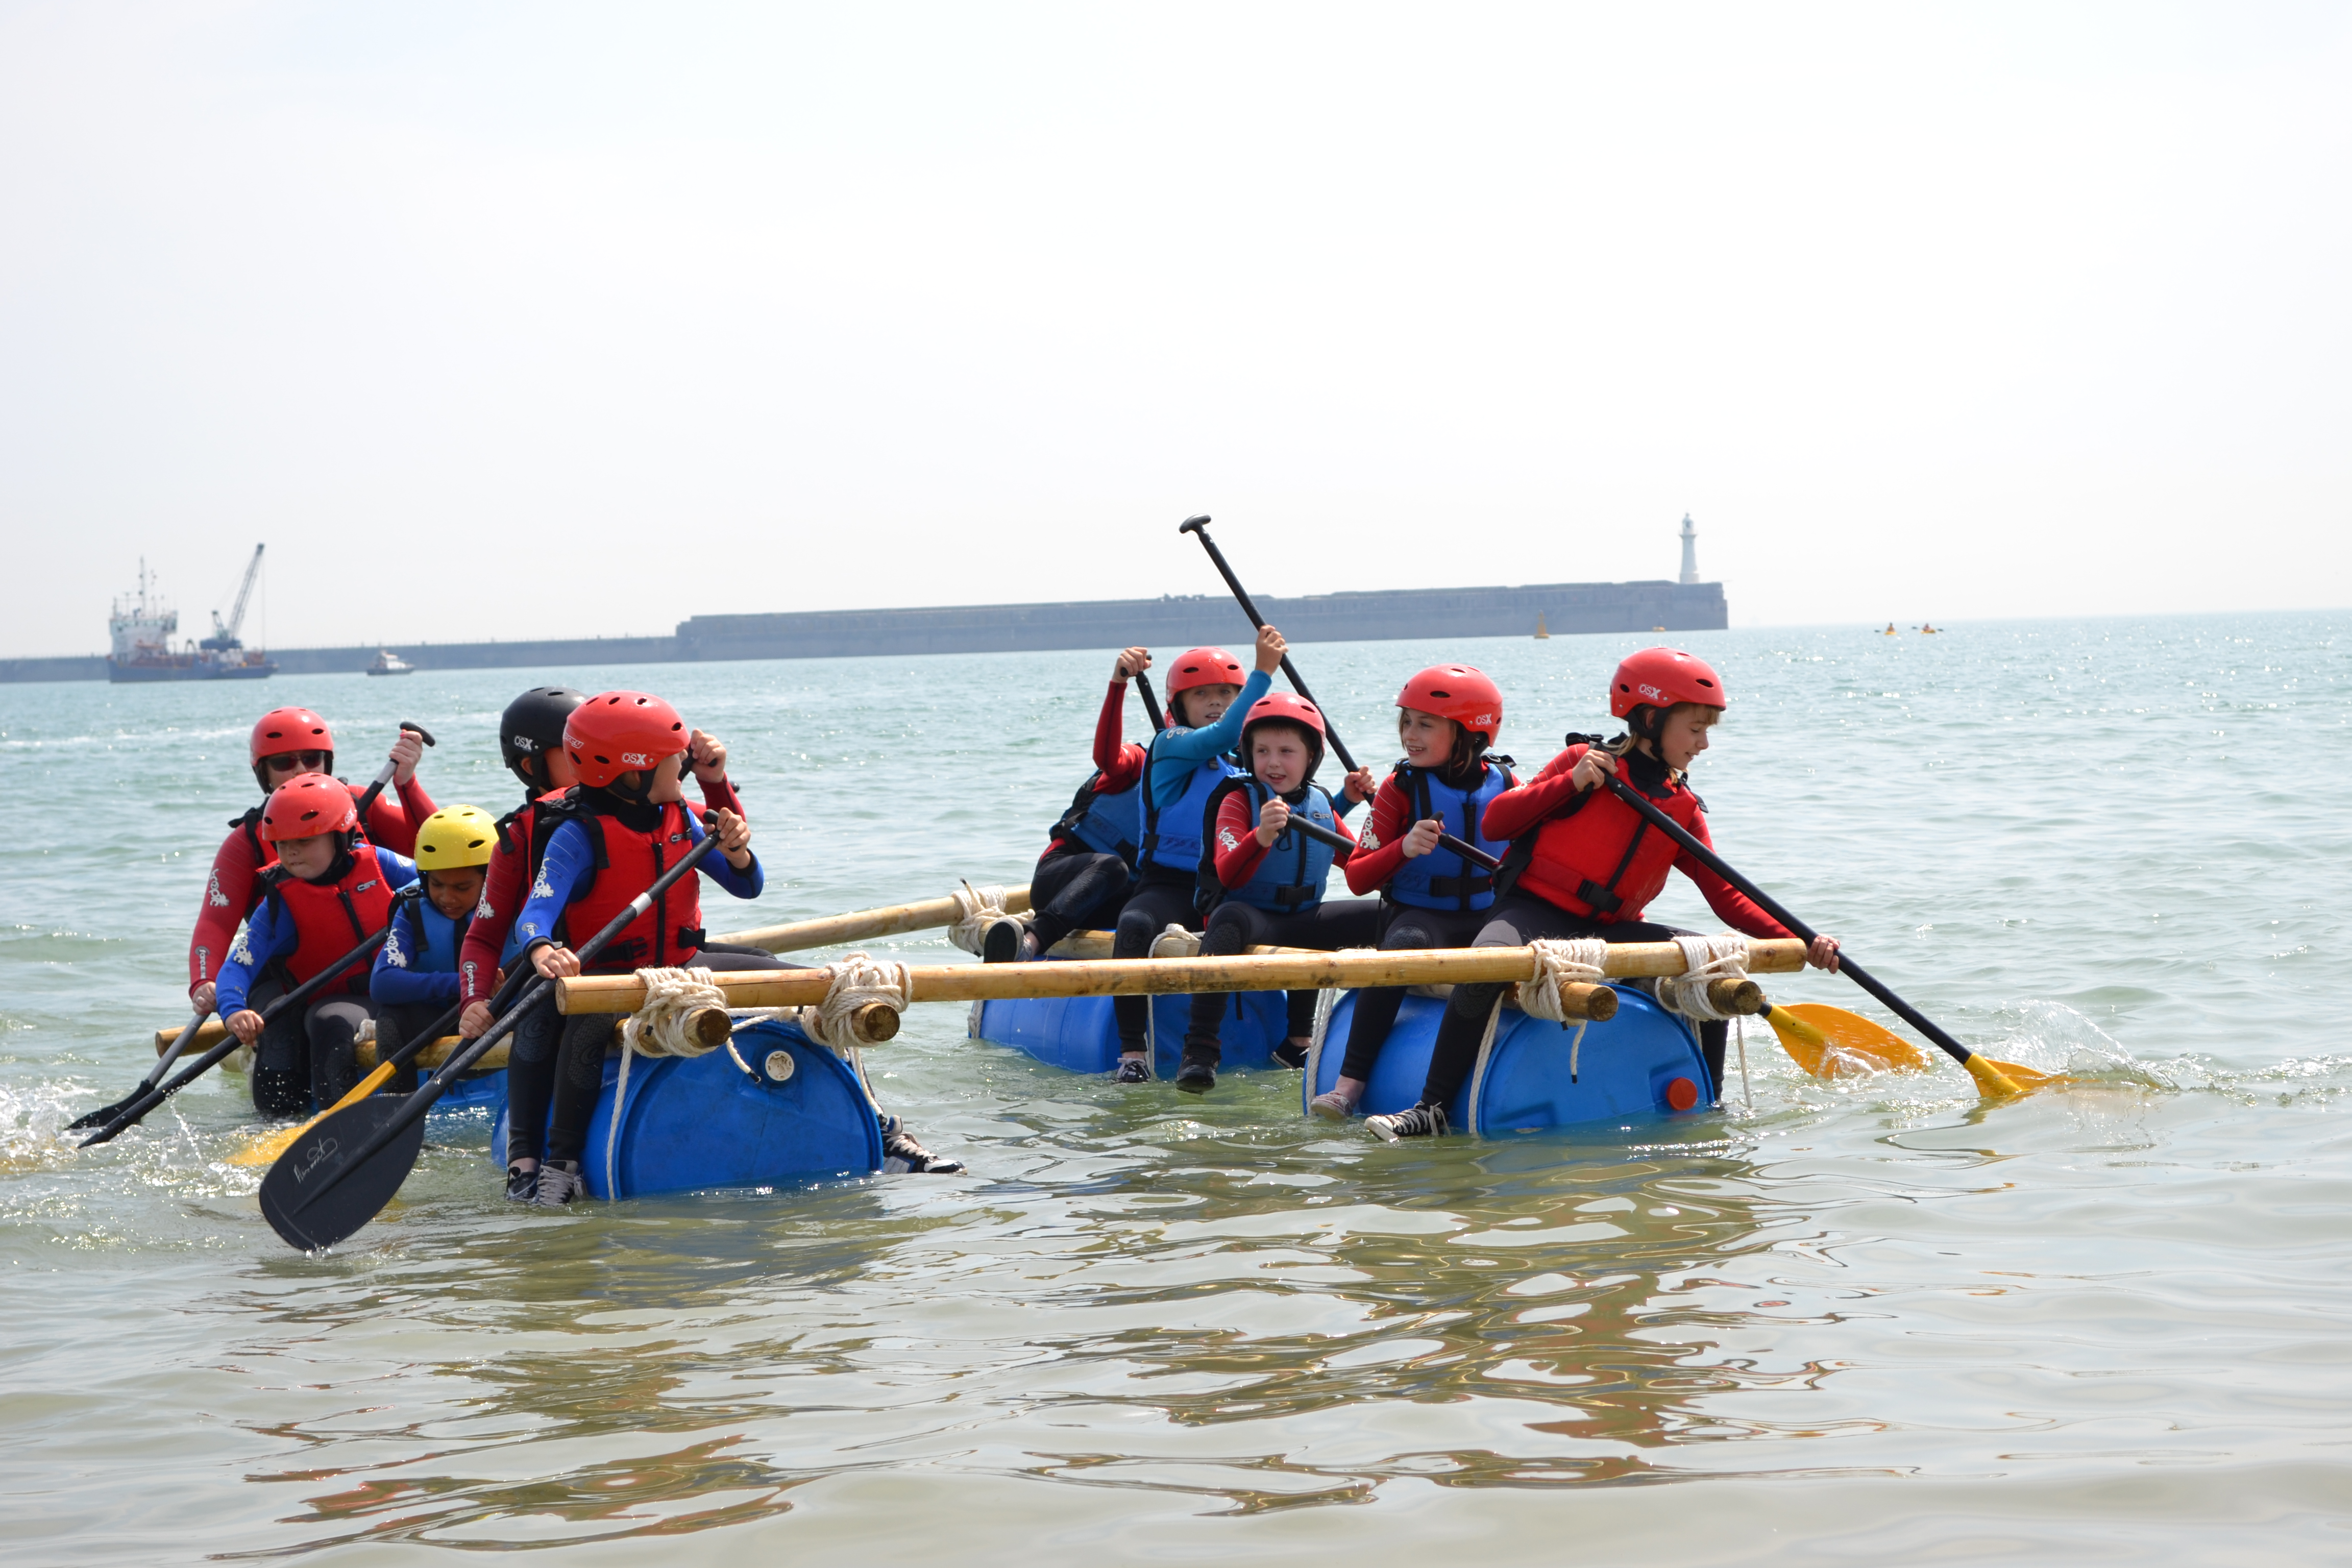 Raft building and racing